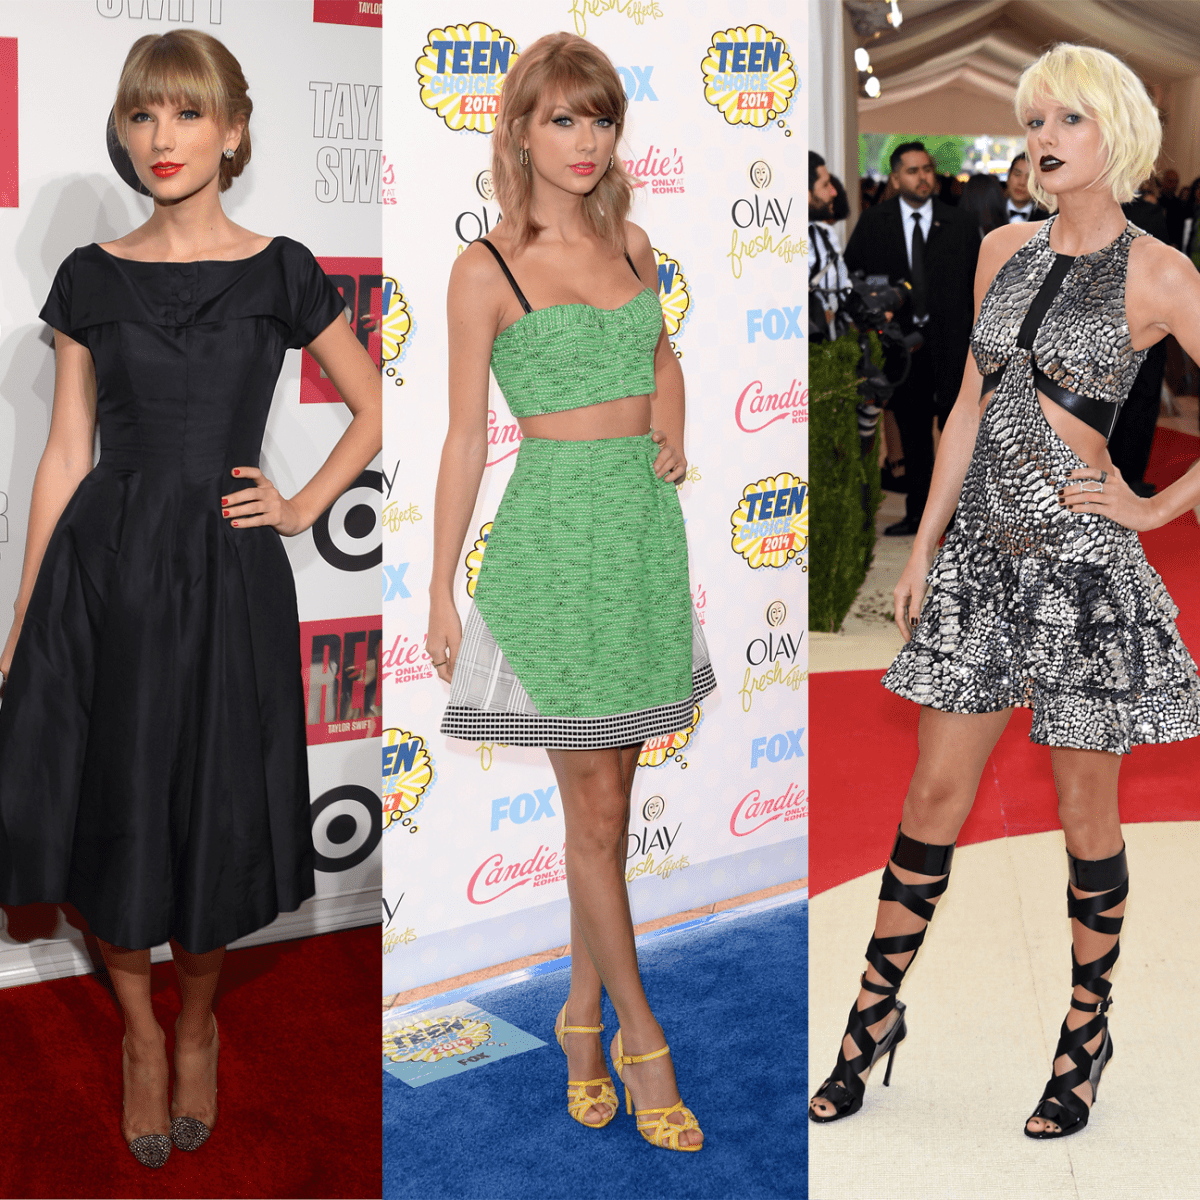 Taylor Swift S New Aesthetic Is Giving Us Clues About Her Upcoming Album Fashionista